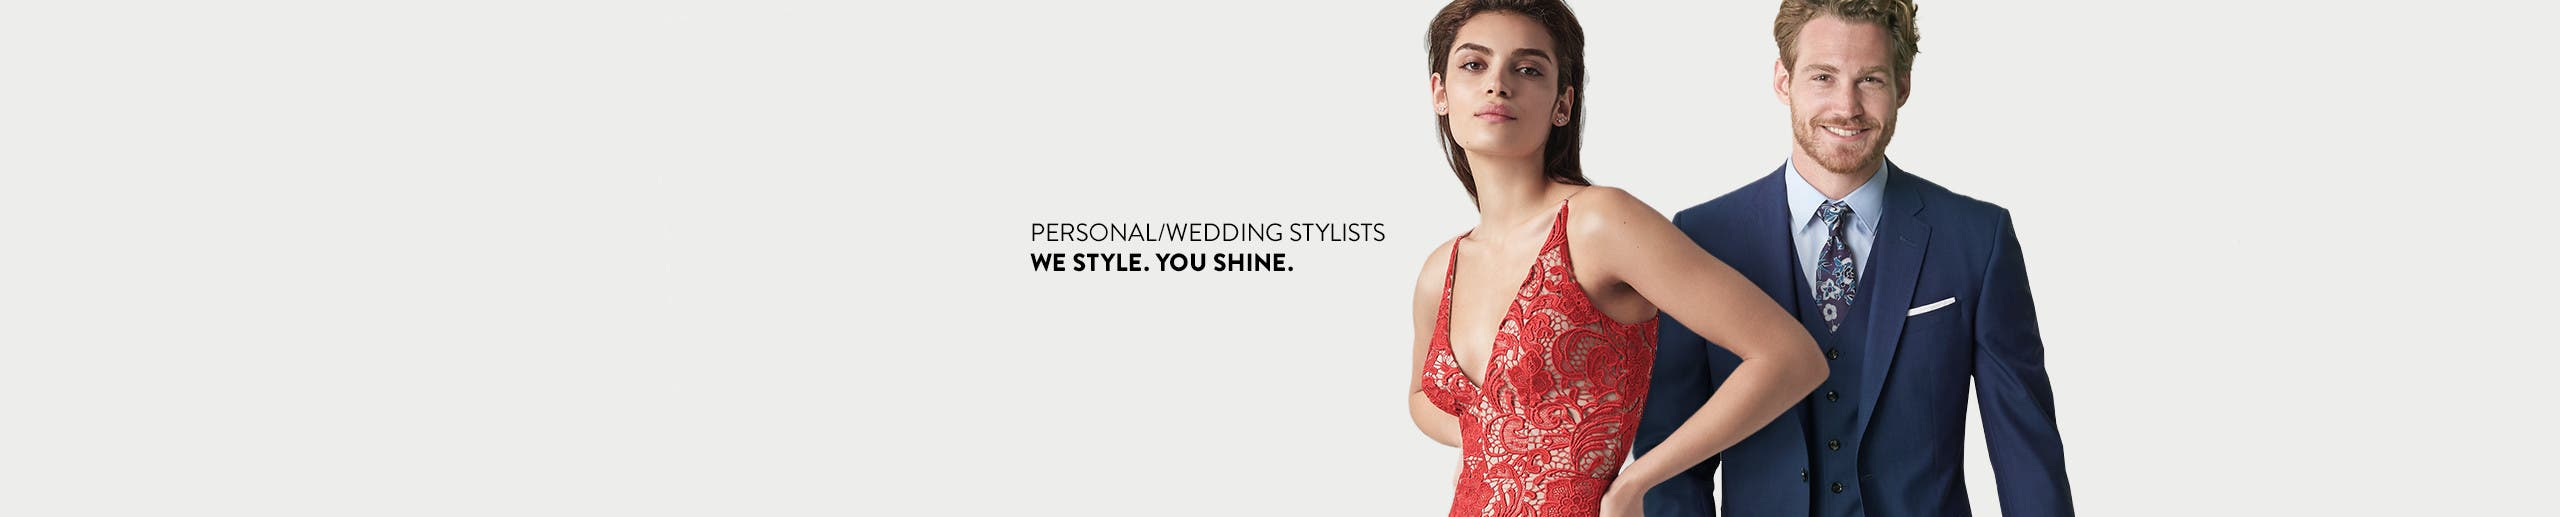 Our stylists. We style. You shine.